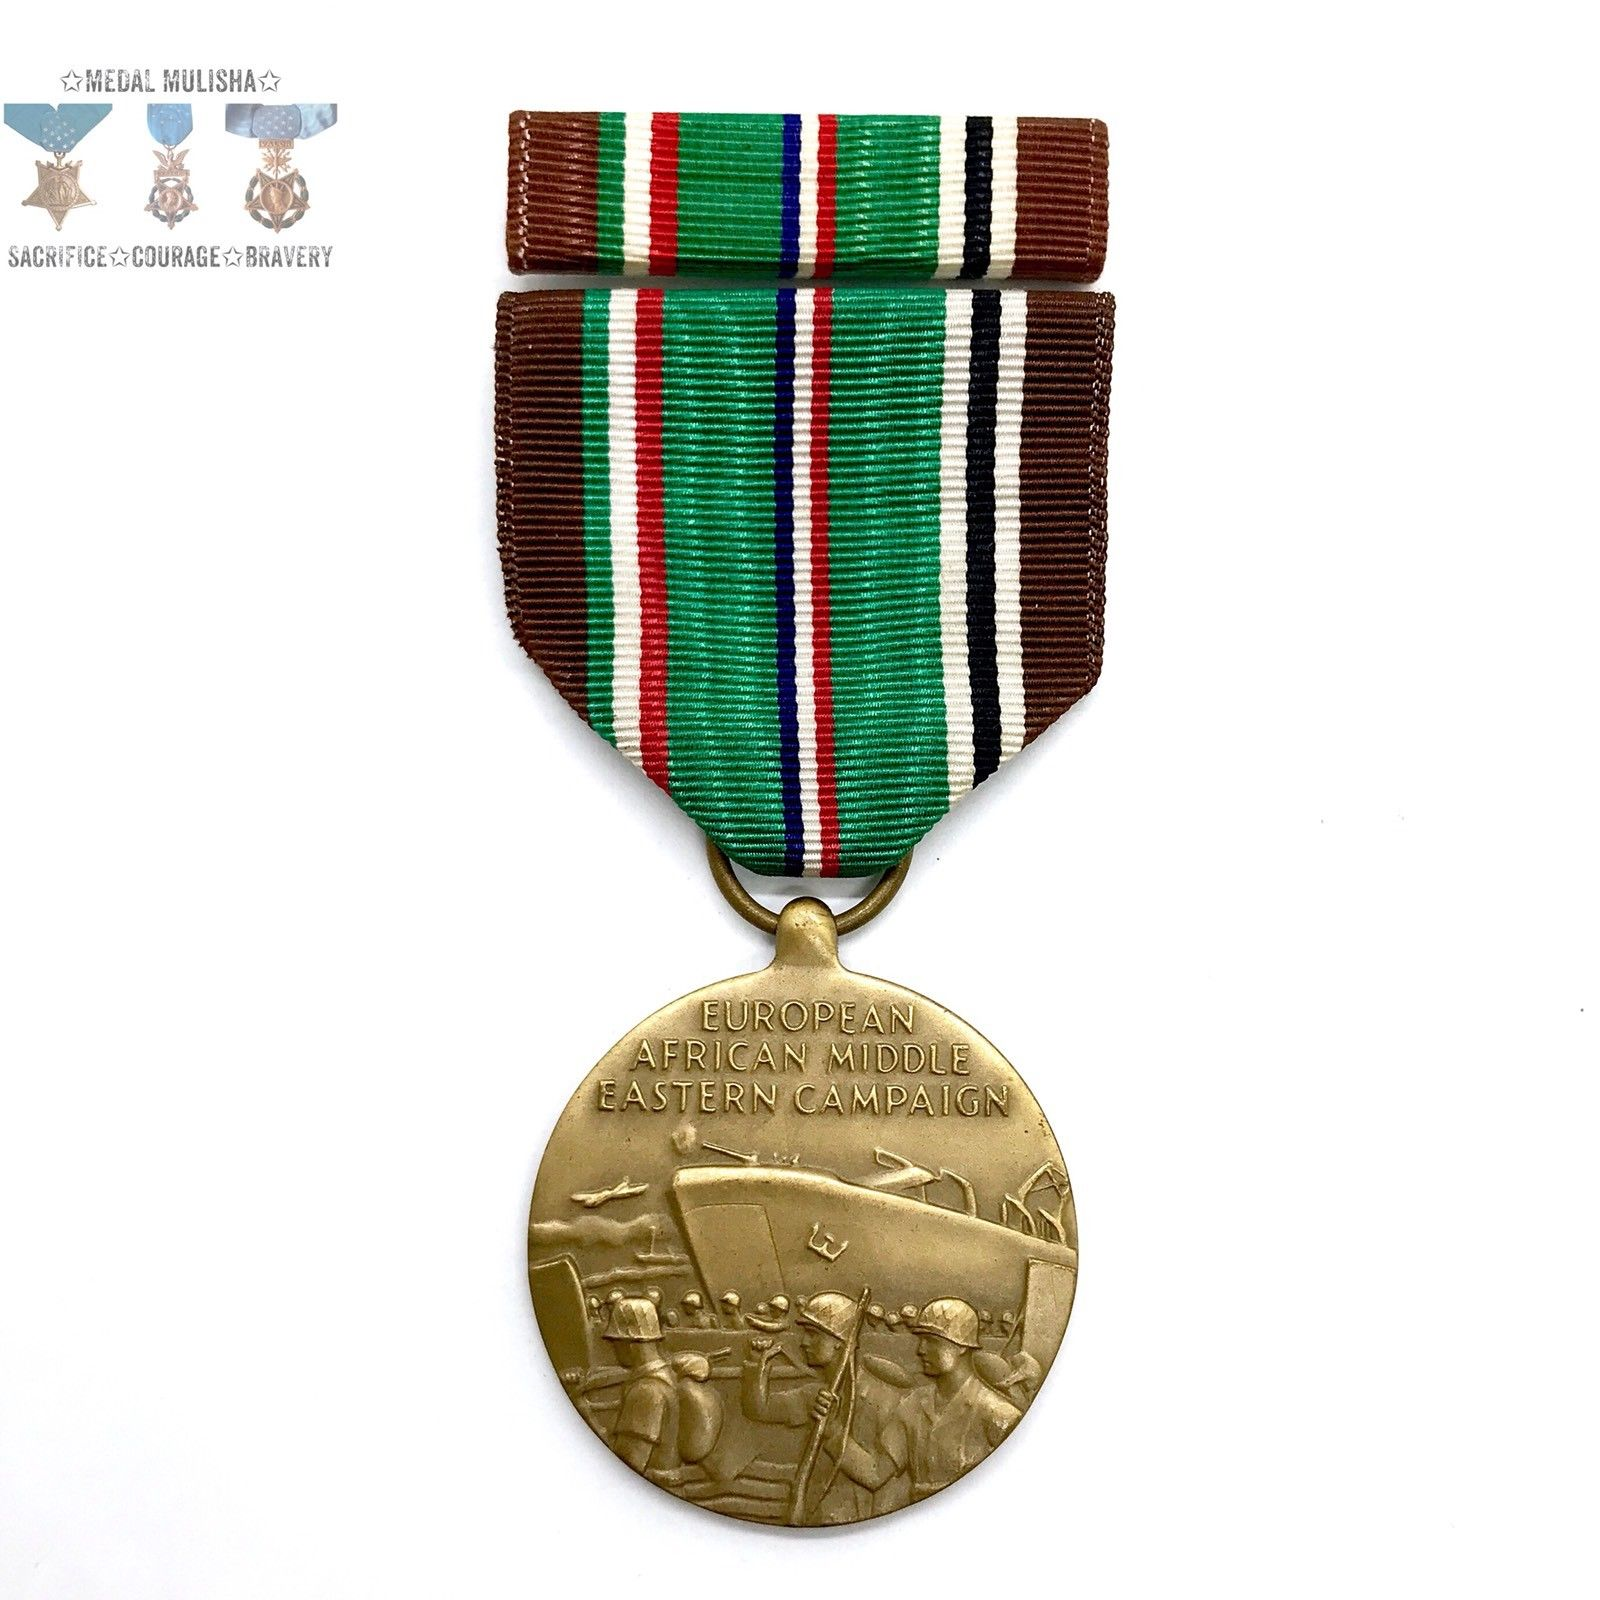 European-African-Middle Eastern Campaign Medal, 1941-1946 with ribbon bar